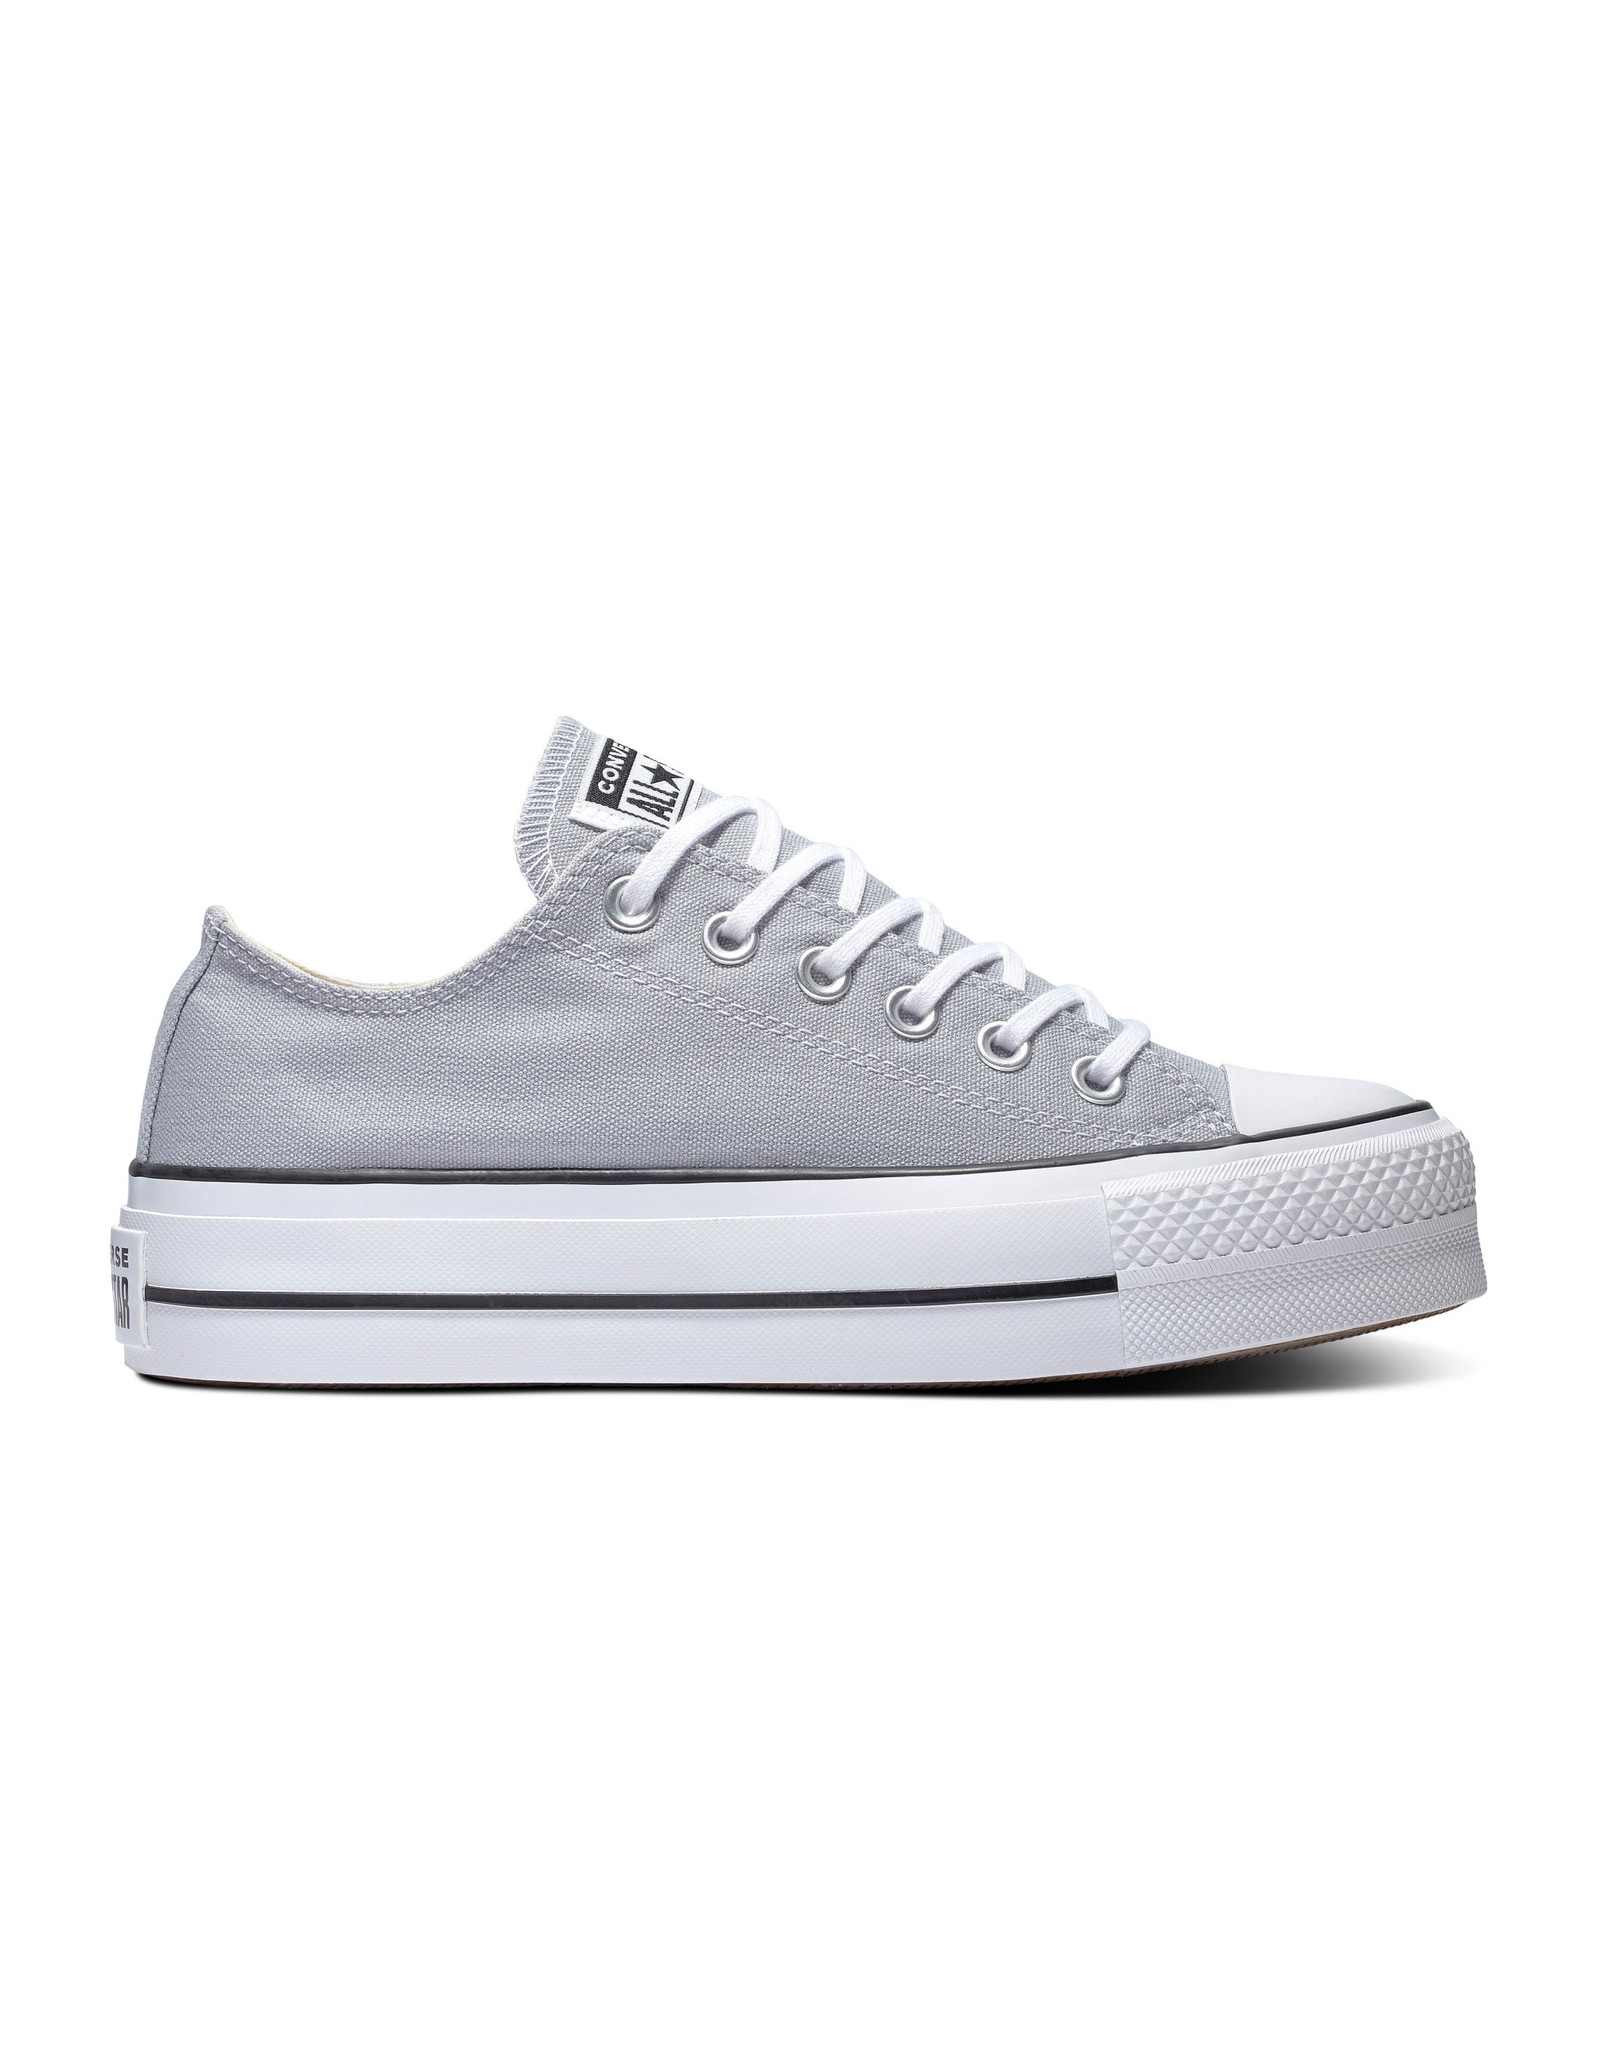 CONVERSE CHUCK TAYLOR ALL STAR  LIFT OX WOLF GREY/WHITE/BLACK C14PWOG-566757C